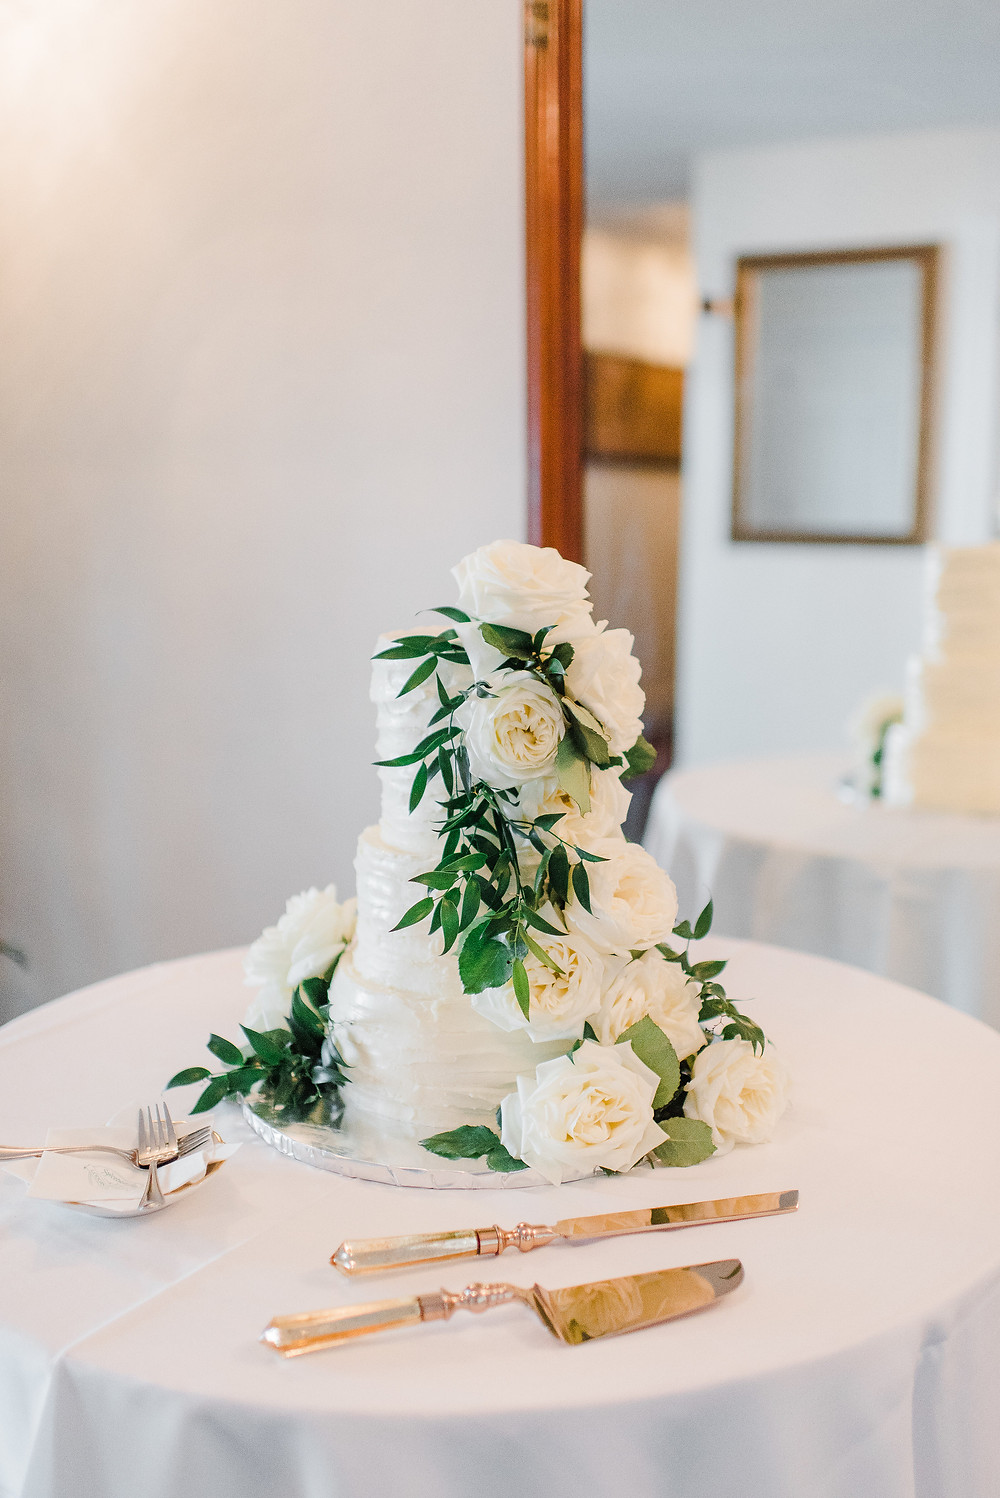 White wedding cake with roses displayed all along the tiers.